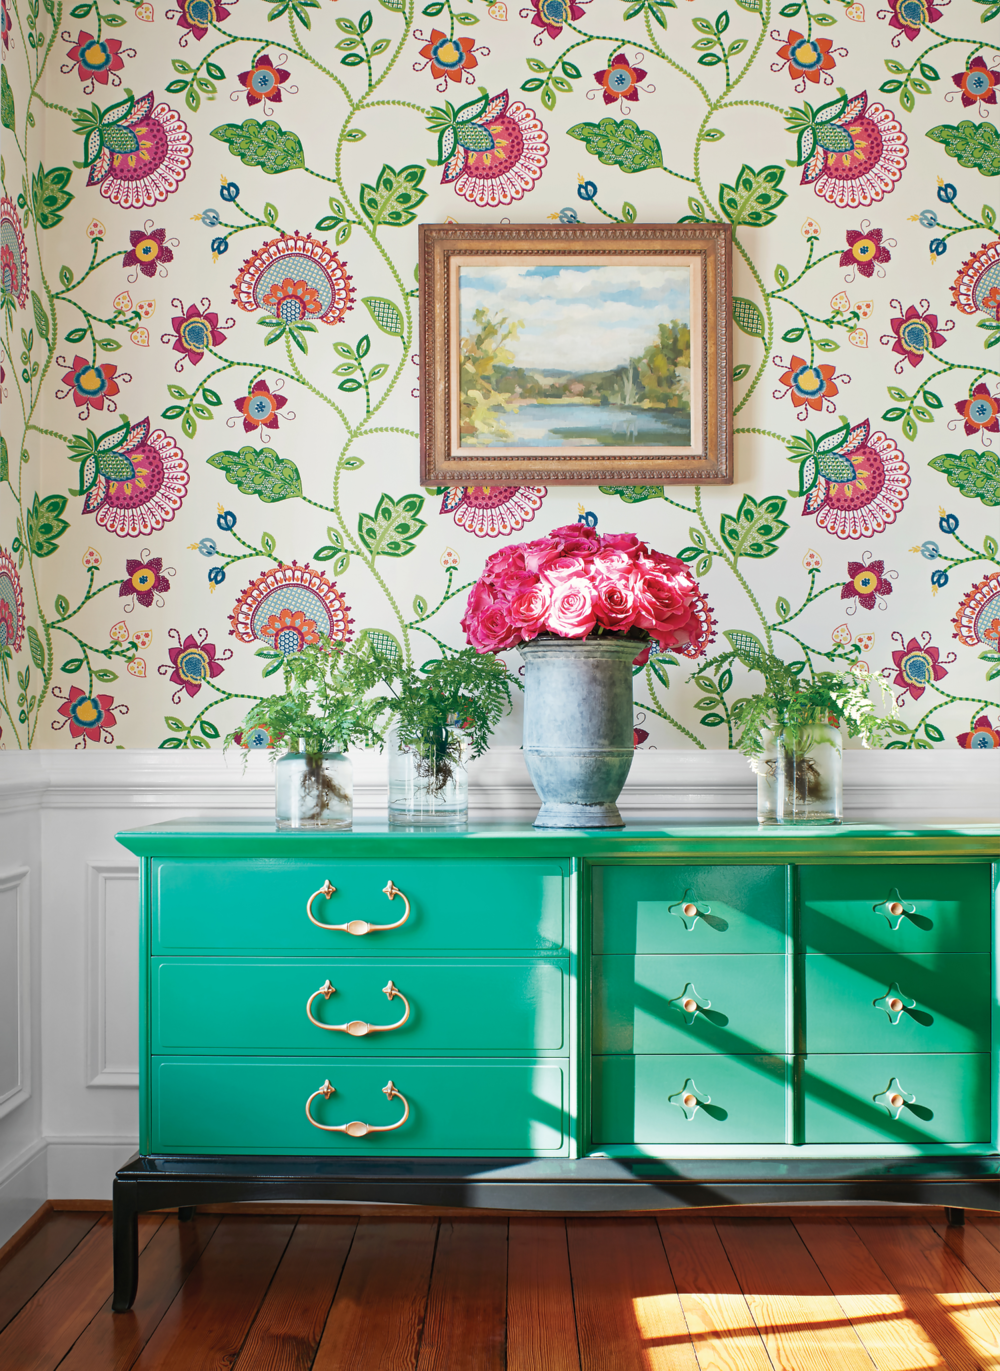 Pretty painted chest set against the backdrop of Thibaut's  Portofino  wall covering. These large, stylized, flowers and other fun details make this a striking accent wall. The wallpaper is rotary screen printed, which uses a lot of ink to make the flowers slightly textured. Photo credit: Courtesy of Thibaut.  w ww.thibautdesign.com